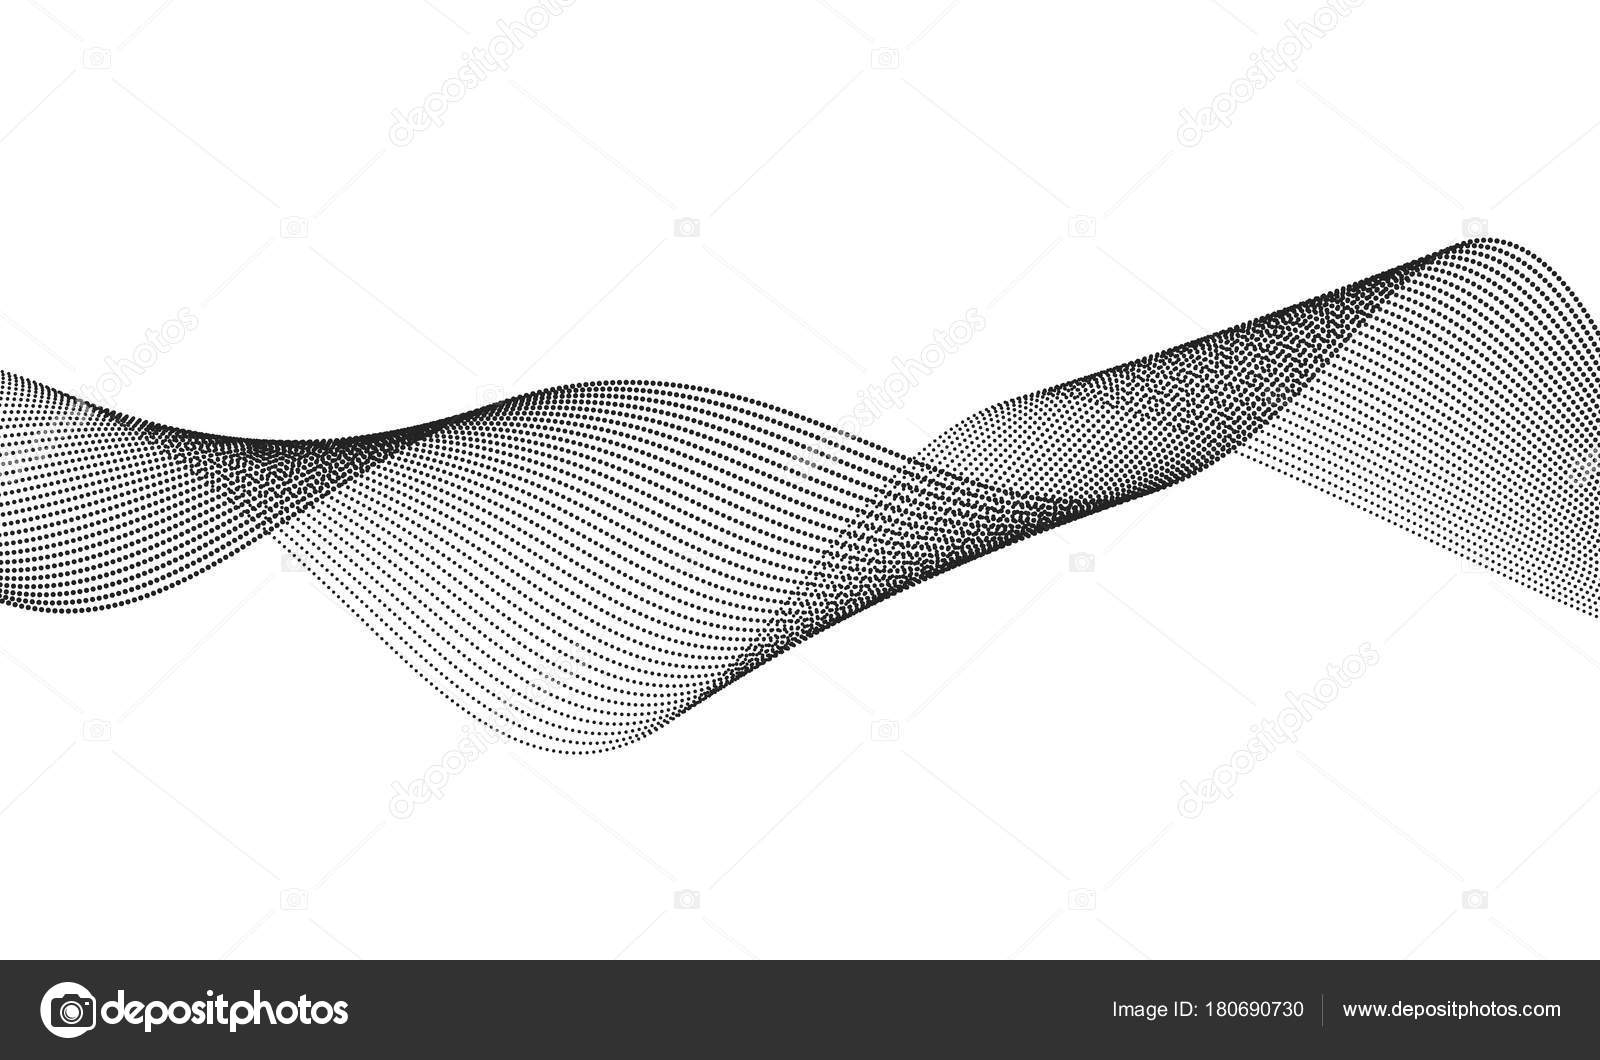 Line The Art Element : Abstract wave element for design digital frequency track